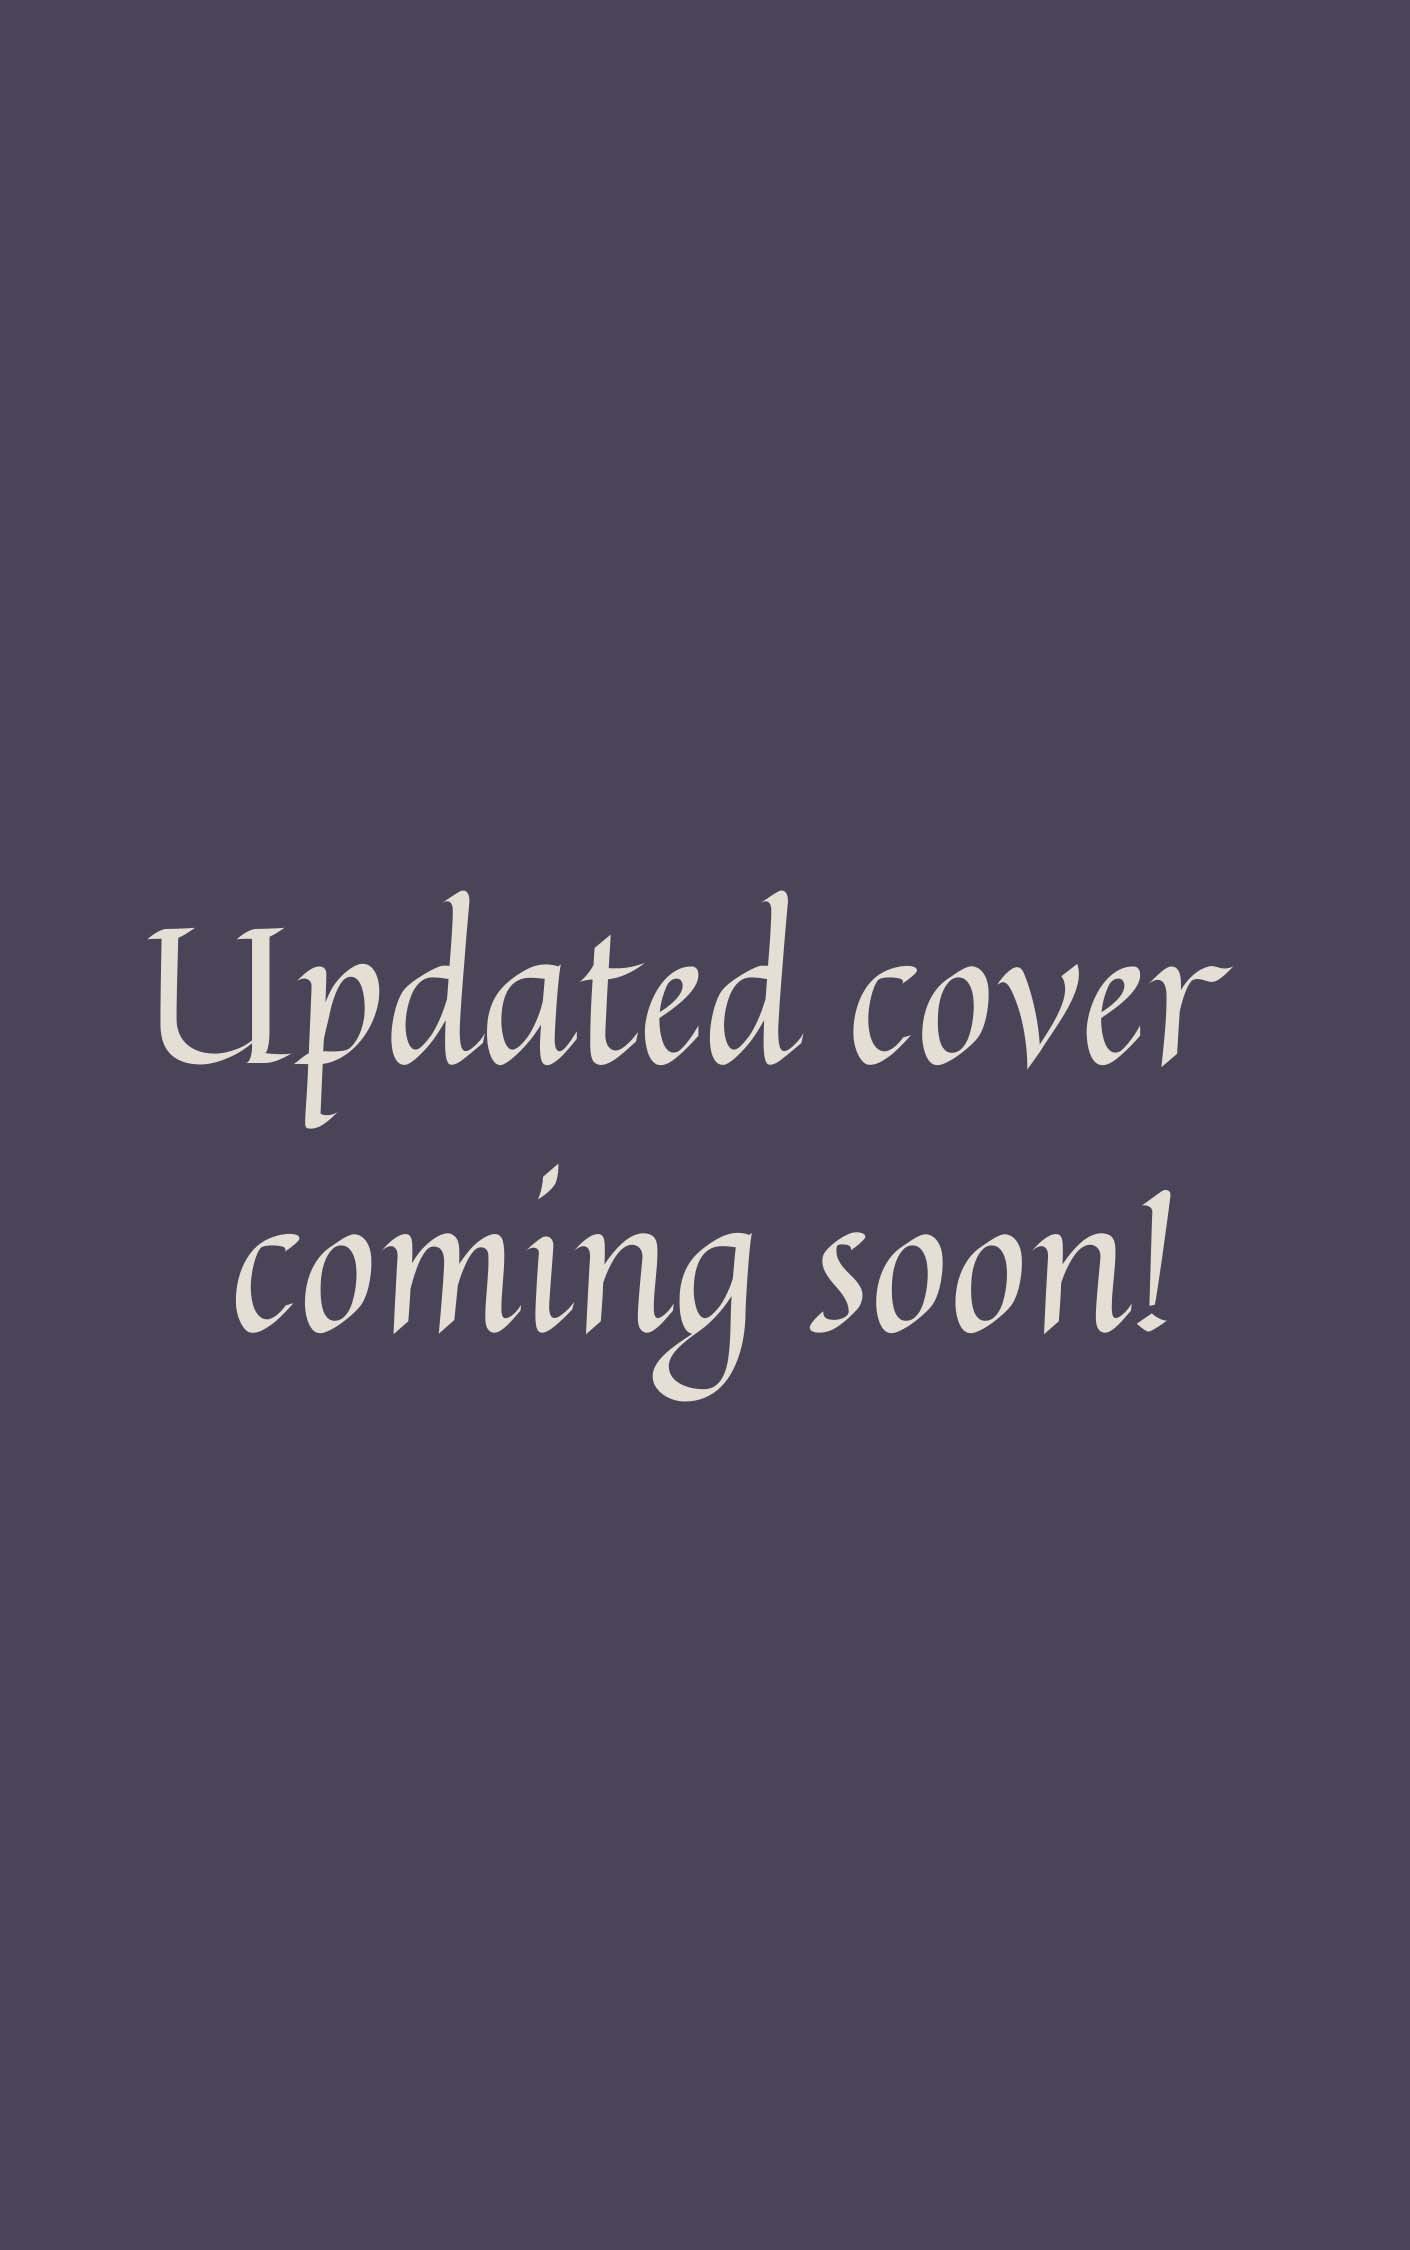 Updated cover coming soon!